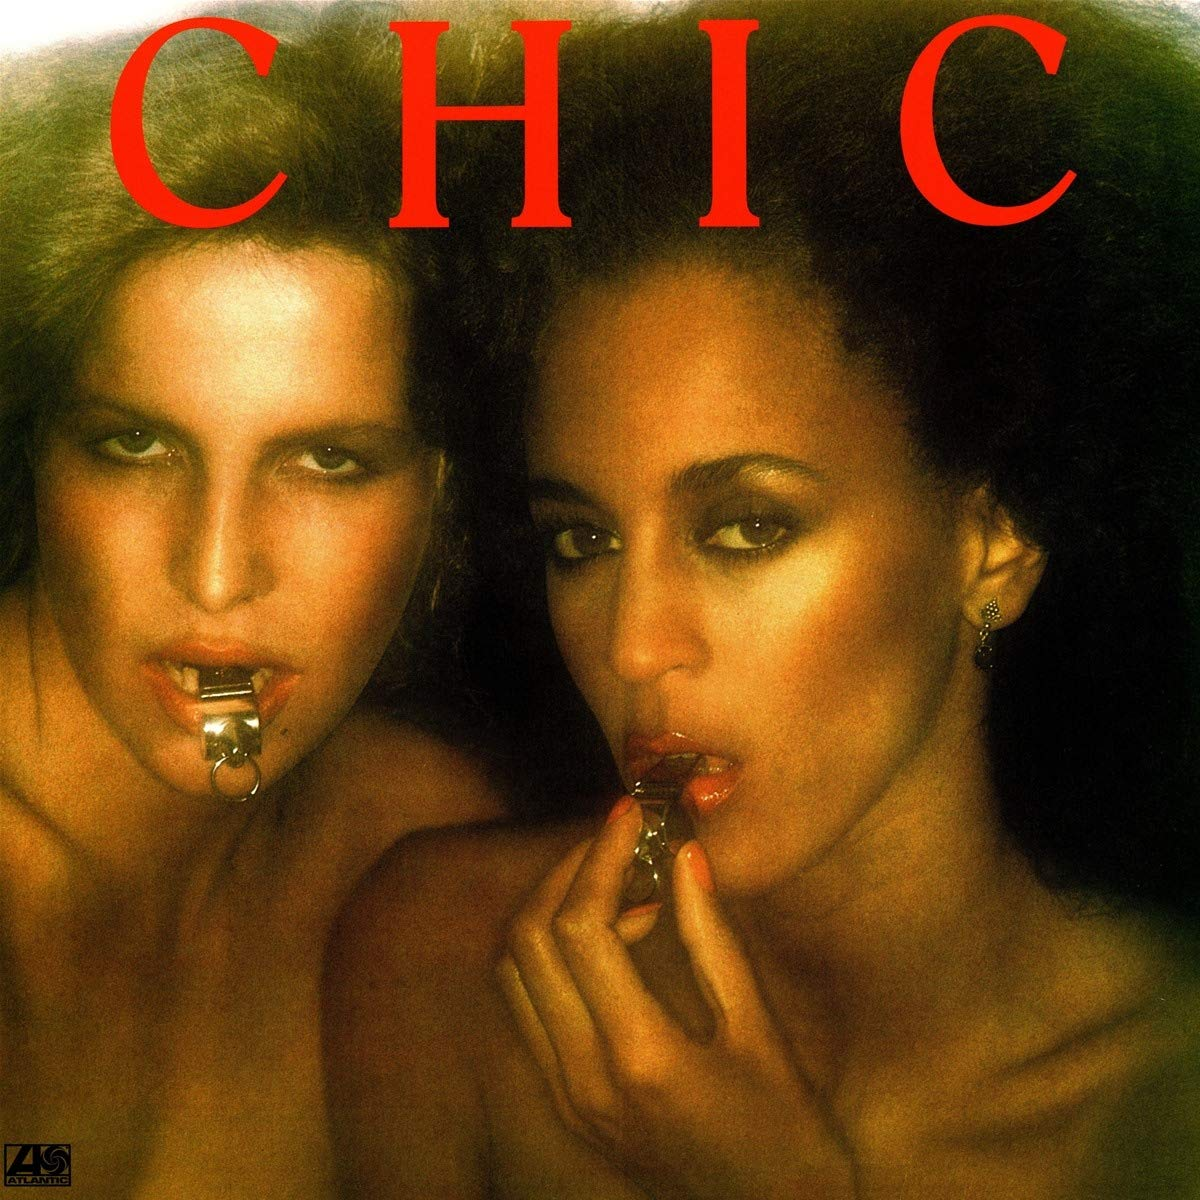 Chic/Chic (Remaster) [LP]